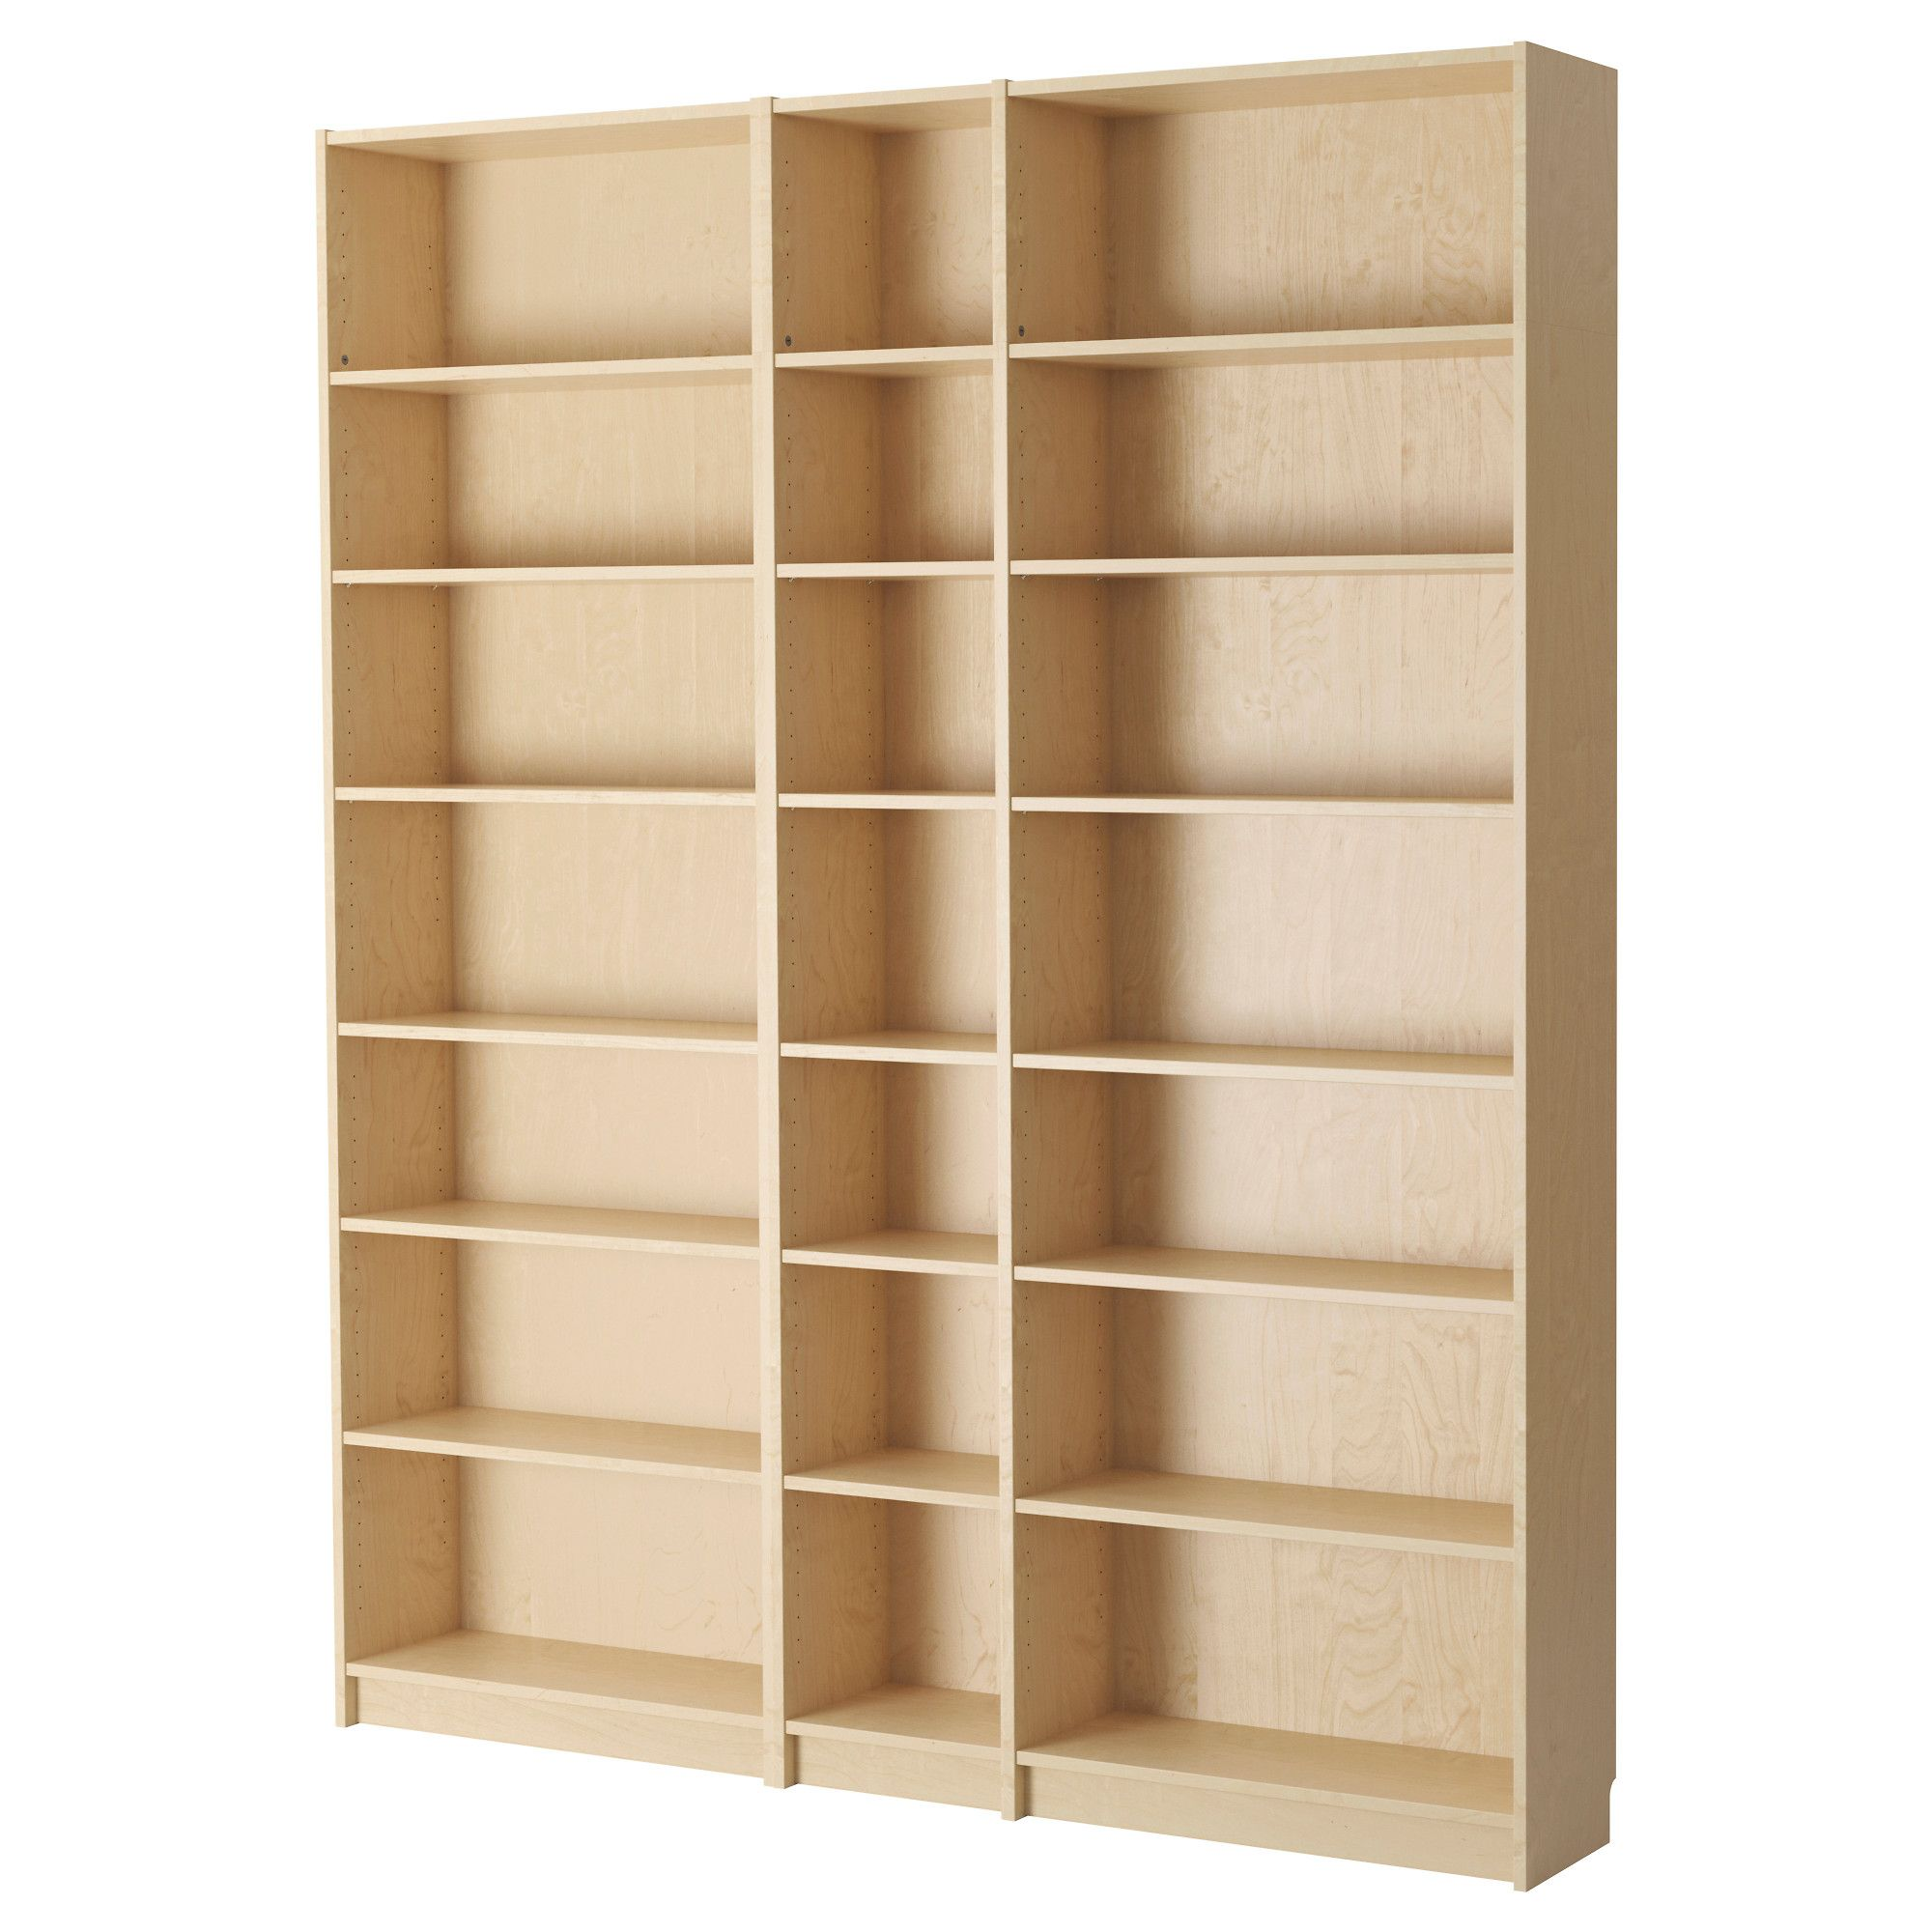 Buy Furniture Thailand Online L Ikea Thailand Billy Bookcase Bookcase Ikea Billy